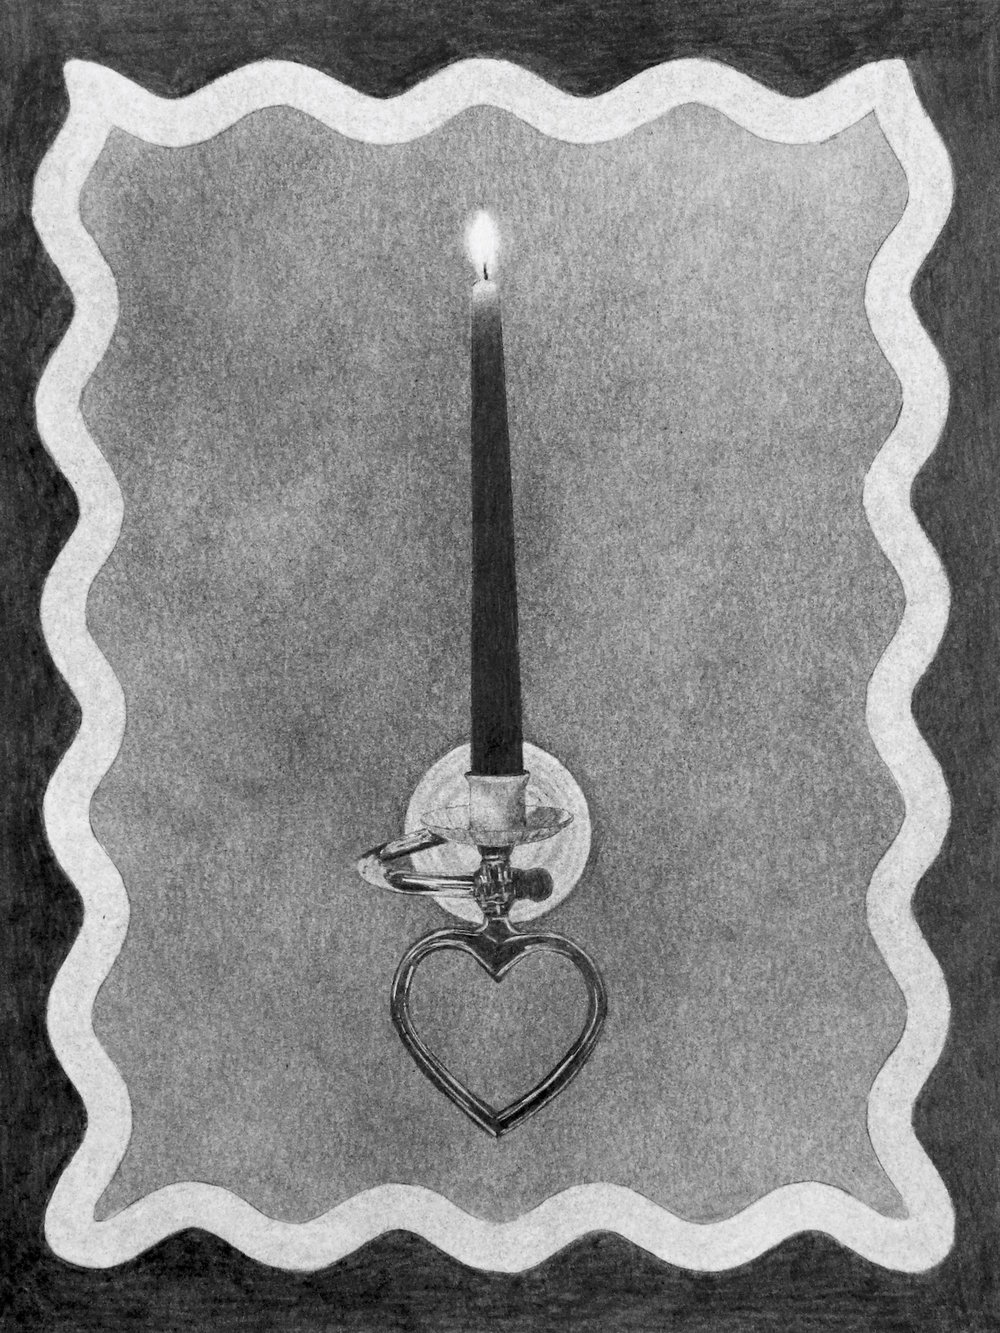 Sconce , 2018. Graphite on paper (original). Ashley Elaine Thomas.  Ashley Elaine Thomas  is a visual artist whose work memorializes everyday overlooked objects through large-scale graphite drawings on paper. She received an MFA from the School of the Art Institute of Chicago in 2011, and currently teaches drawing and design at Del Mar College and Texas A&M University-Corpus Christi.